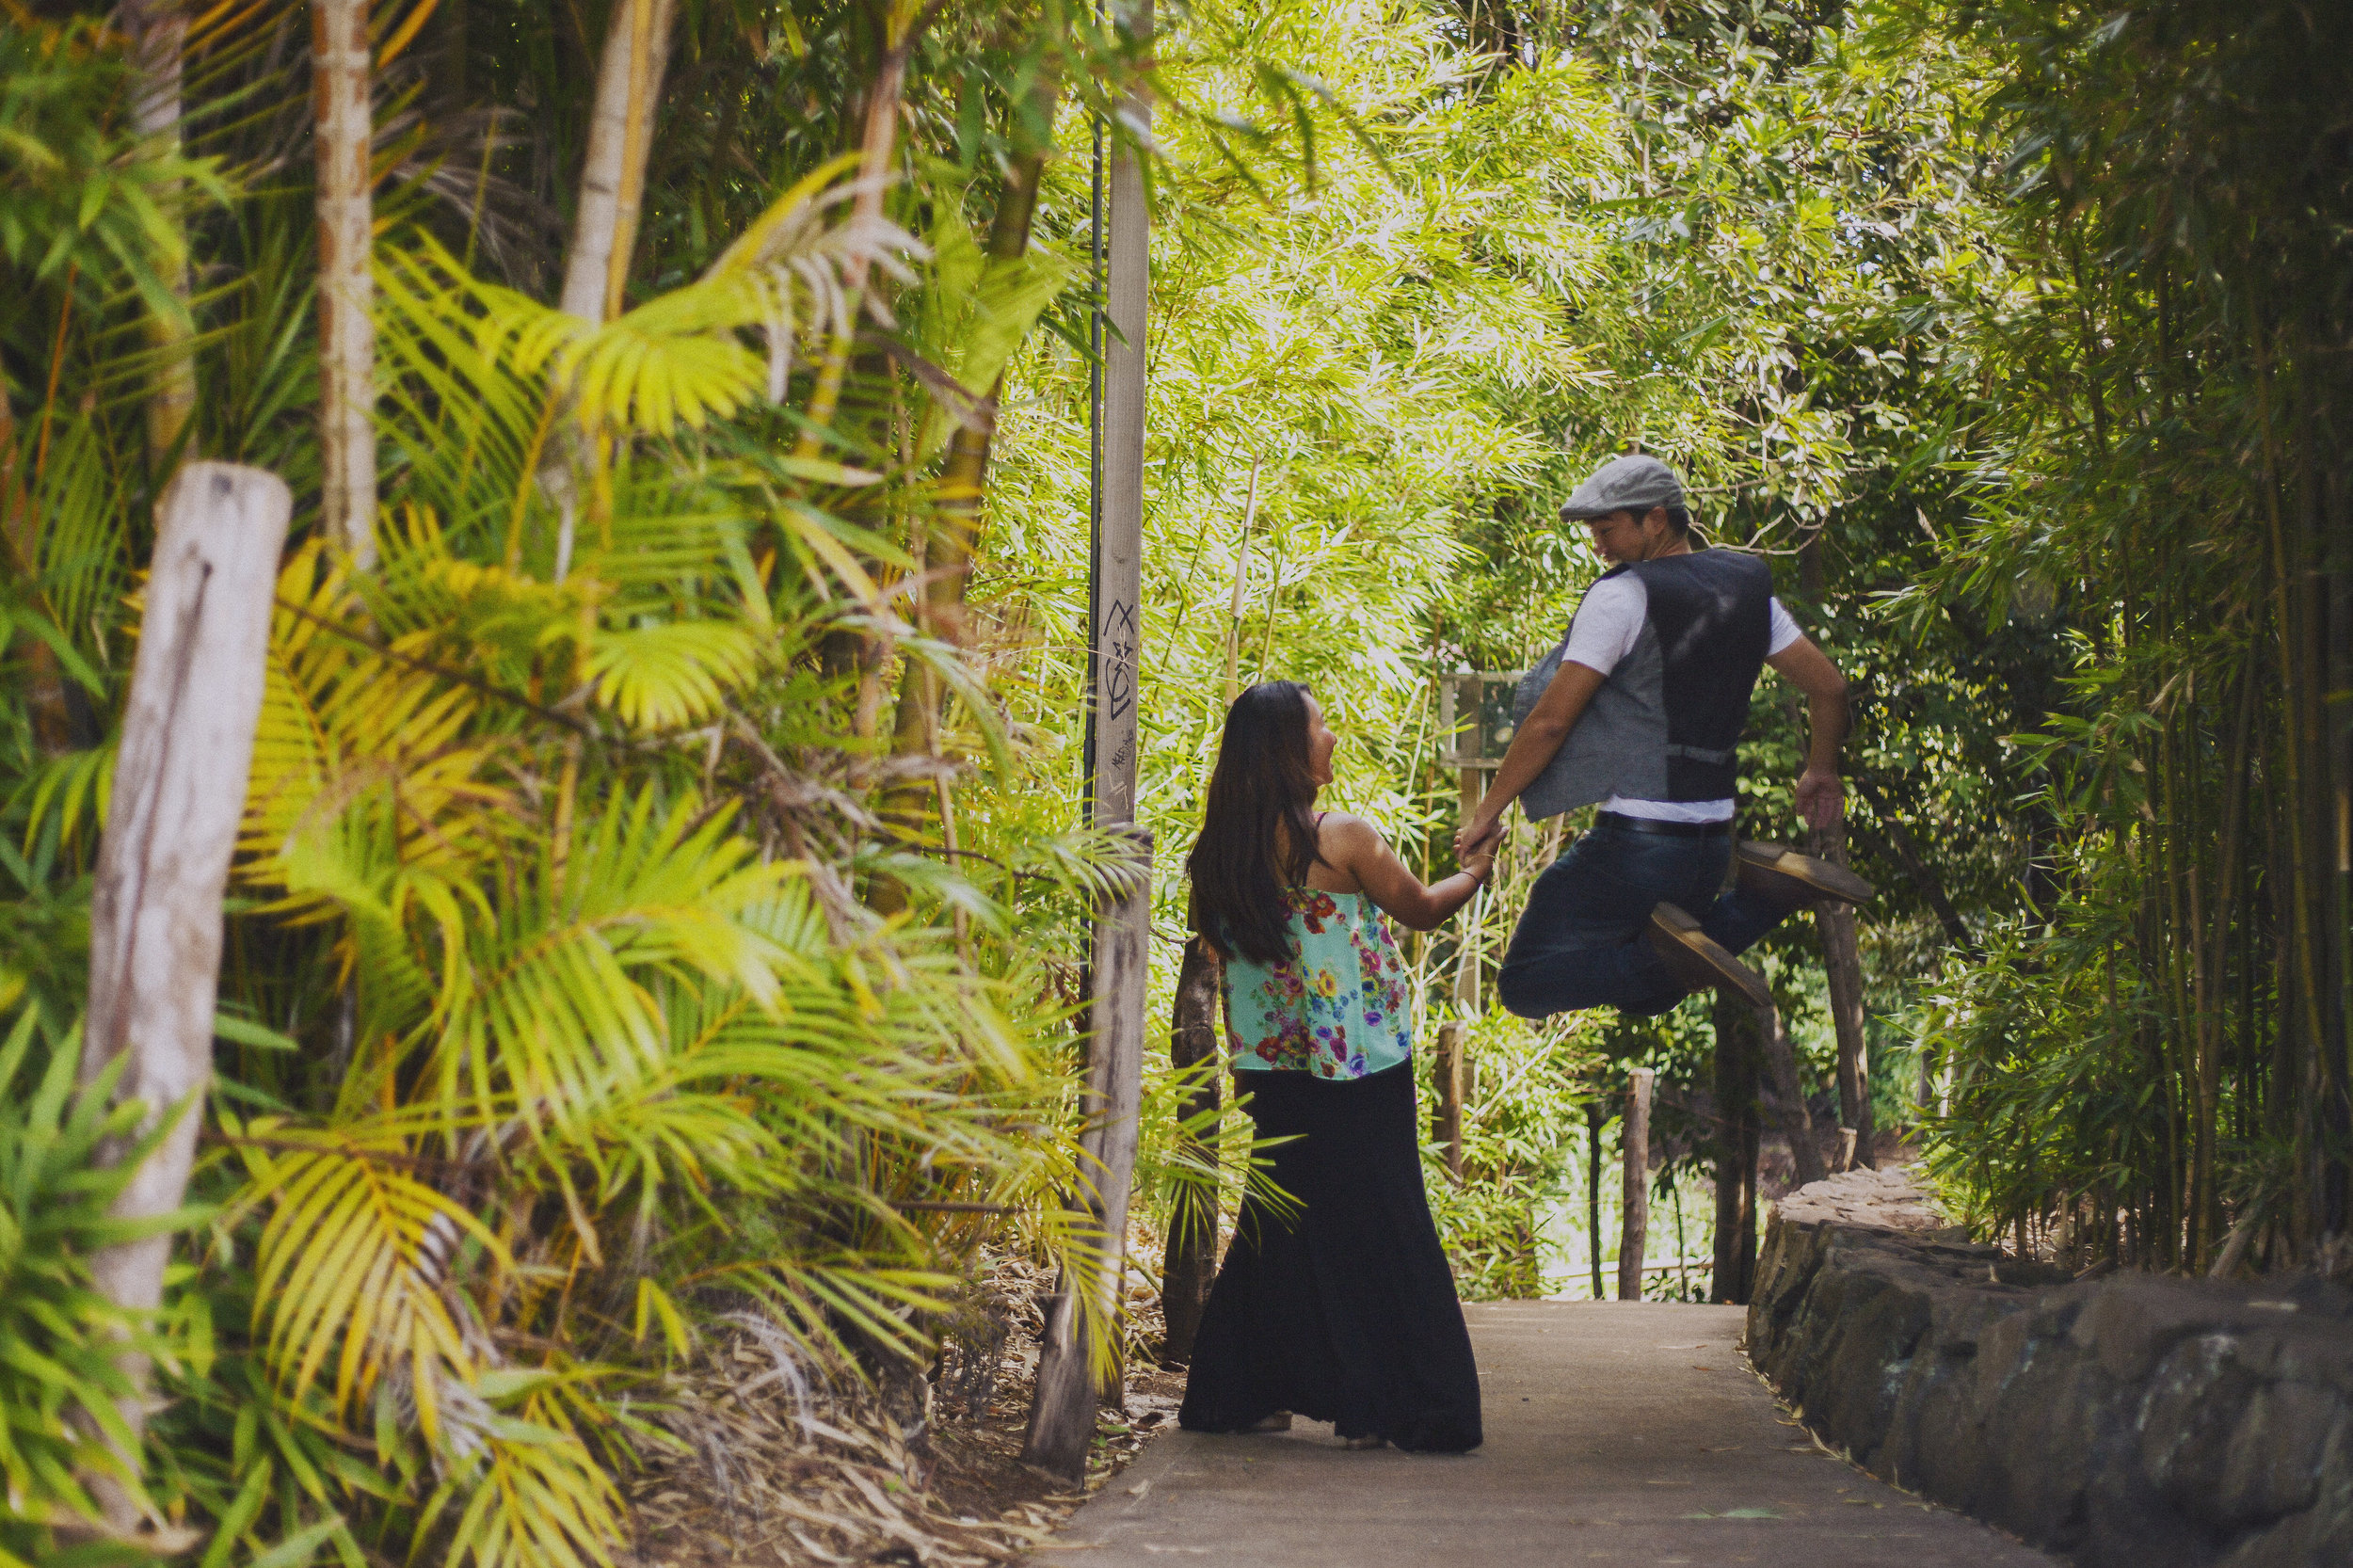 angie-diaz-photography-maui-upcountry-engagement-18.jpg